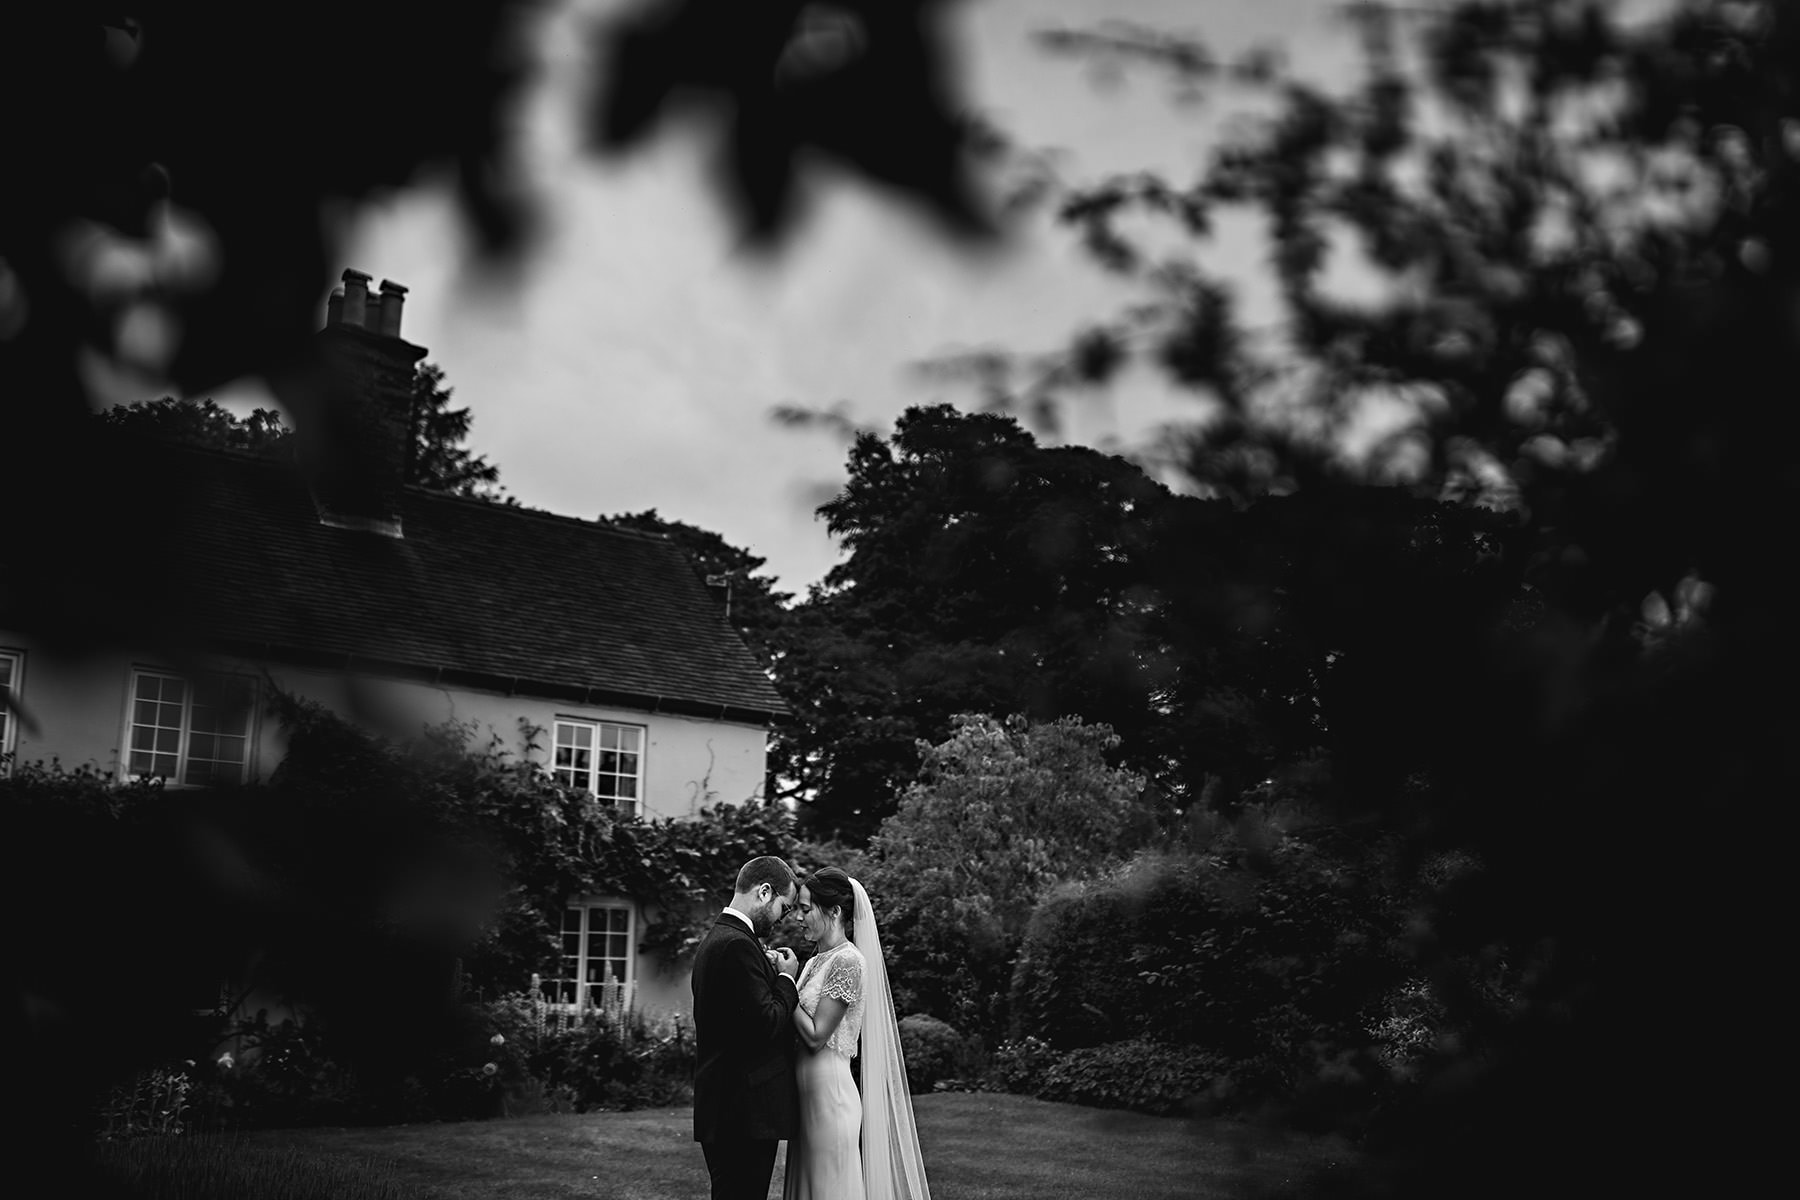 The bride and groom stood together in front of thier house in black and white monochrome